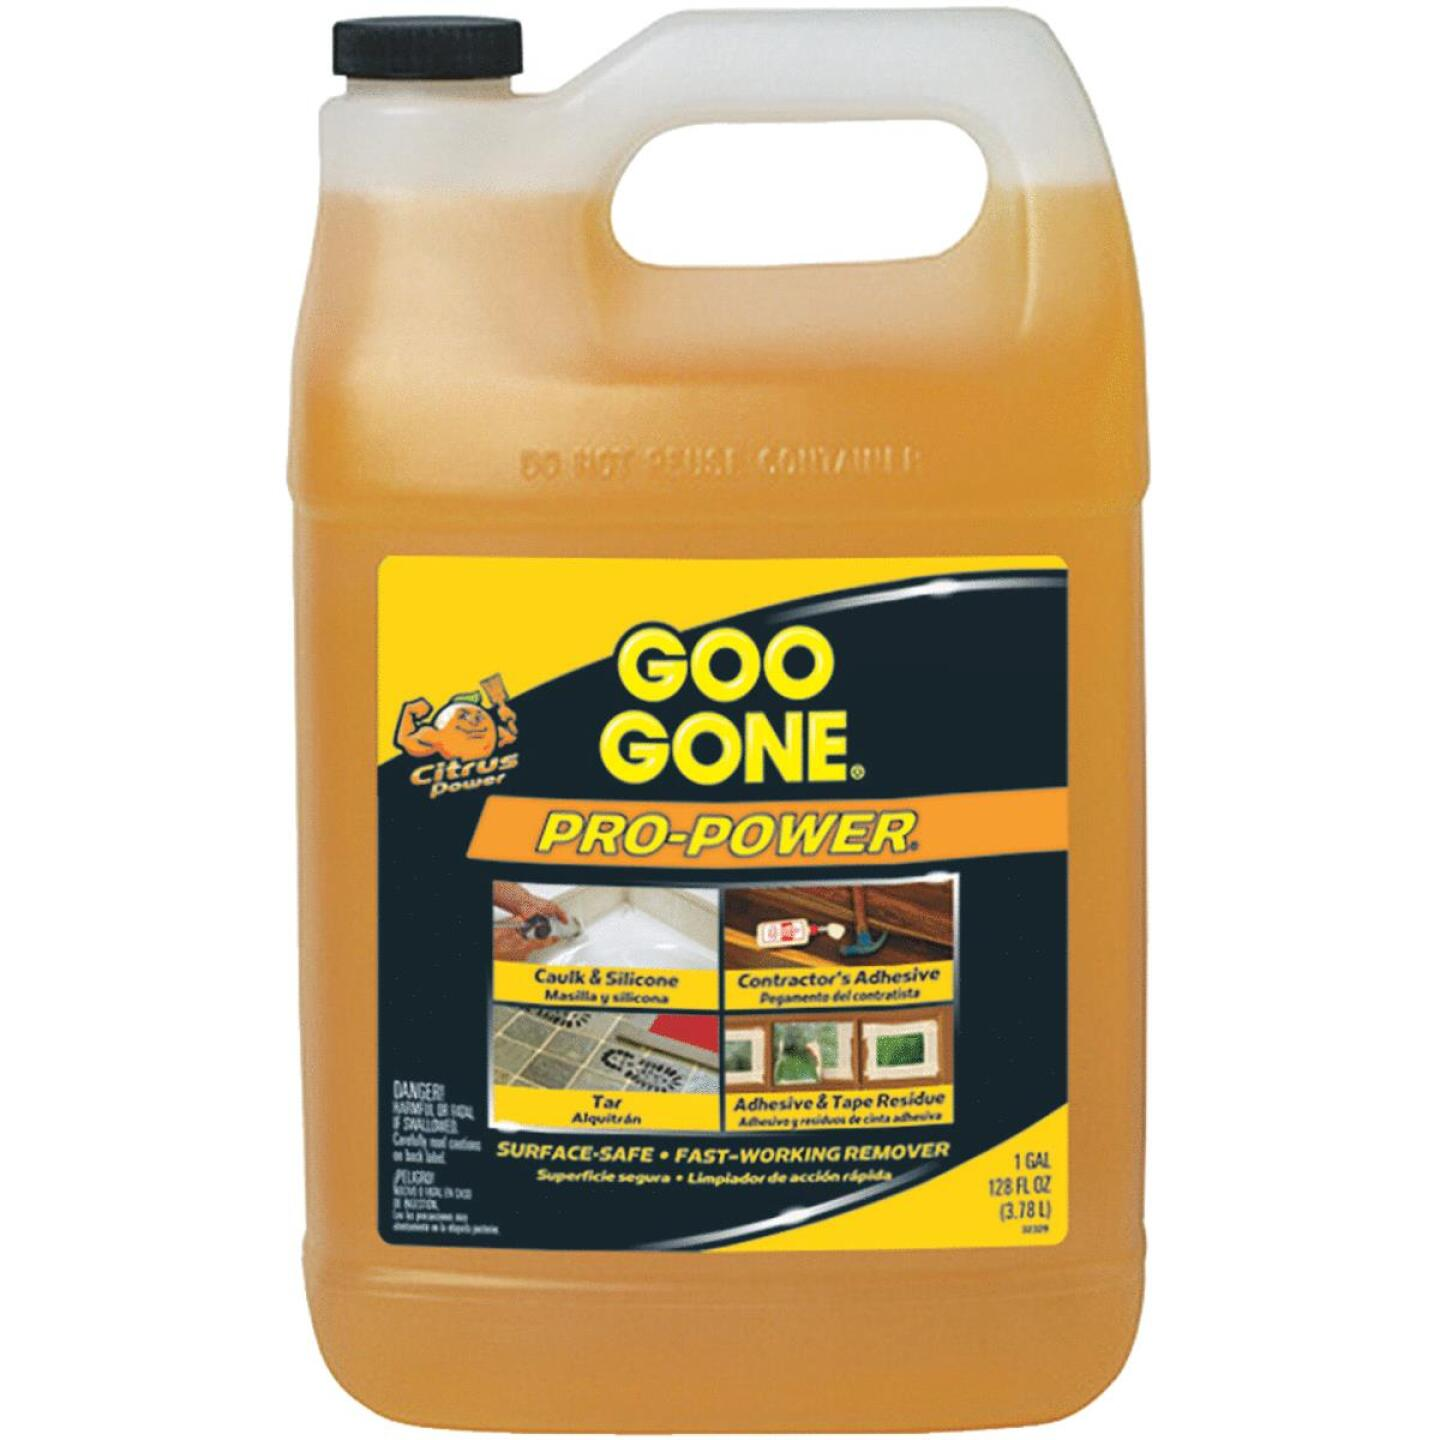 Goo Gone 1 Gal. Pro-Power Adhesive Remover Image 37